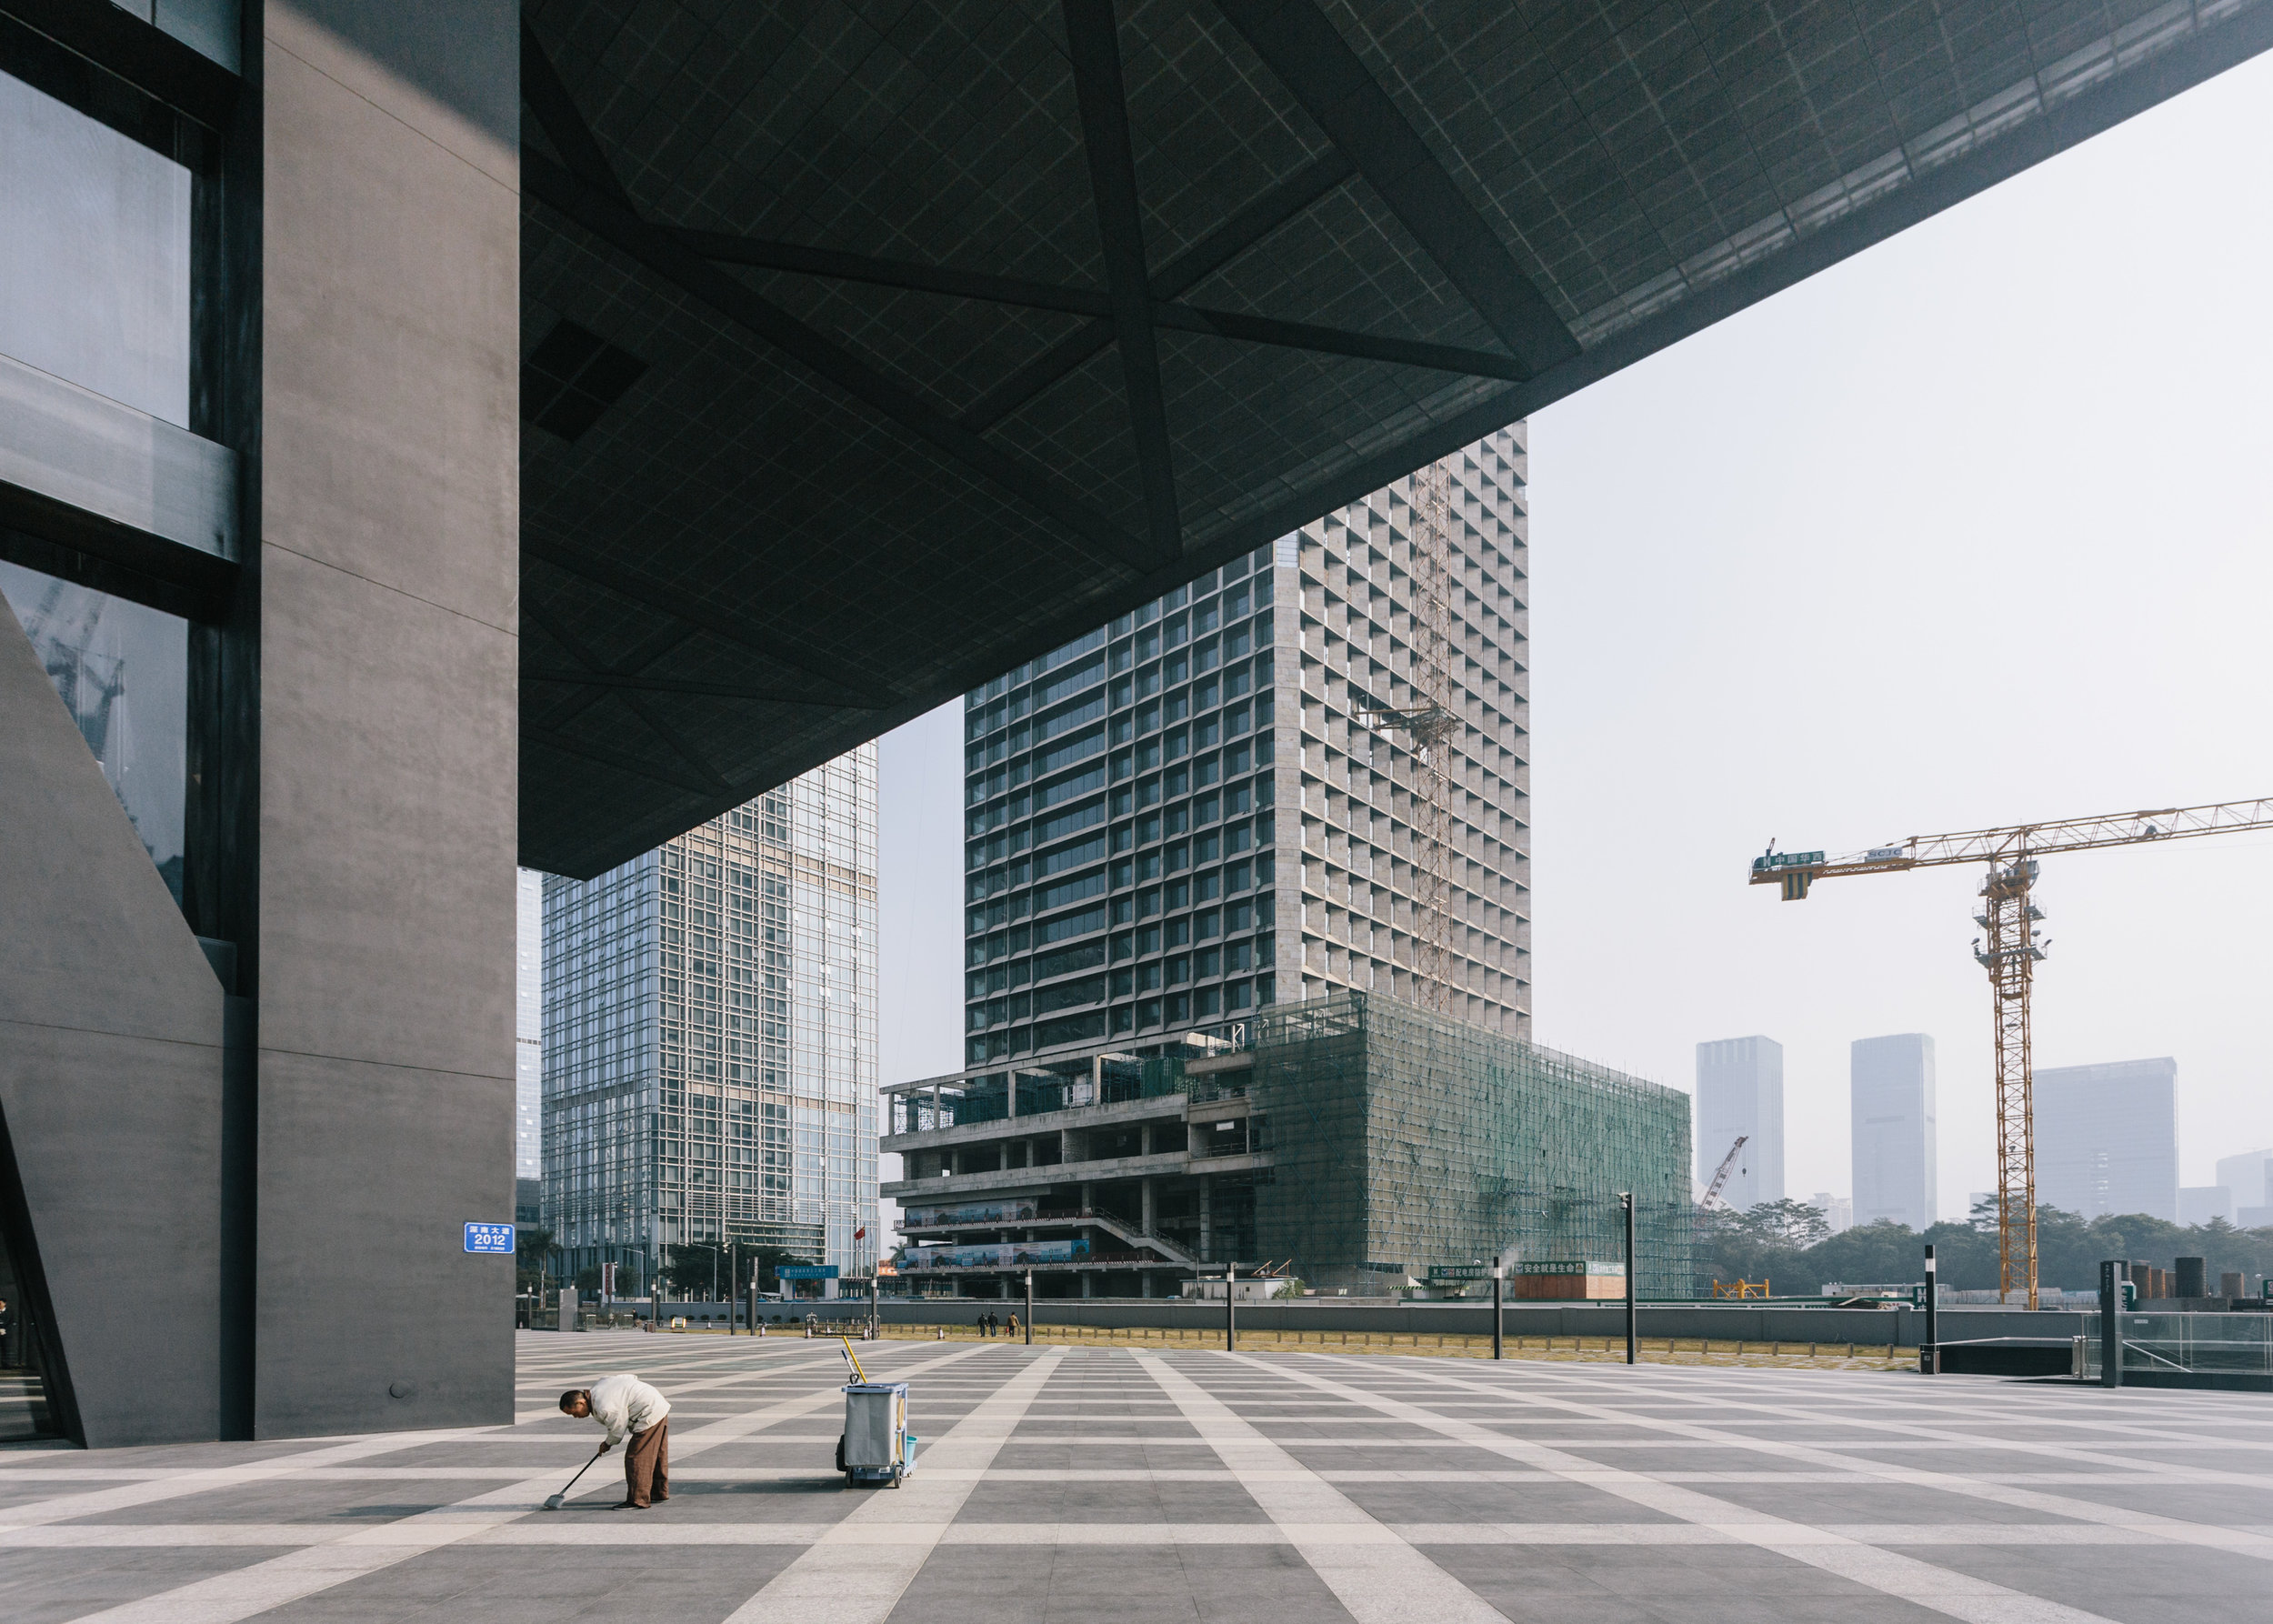 Shenzhen Stock Exchange I    (from  Serial Narratives ) 2015  C-type print; 114 x 160 cm (Edition of 4) or 86 x 120 cm (Edition of 7)